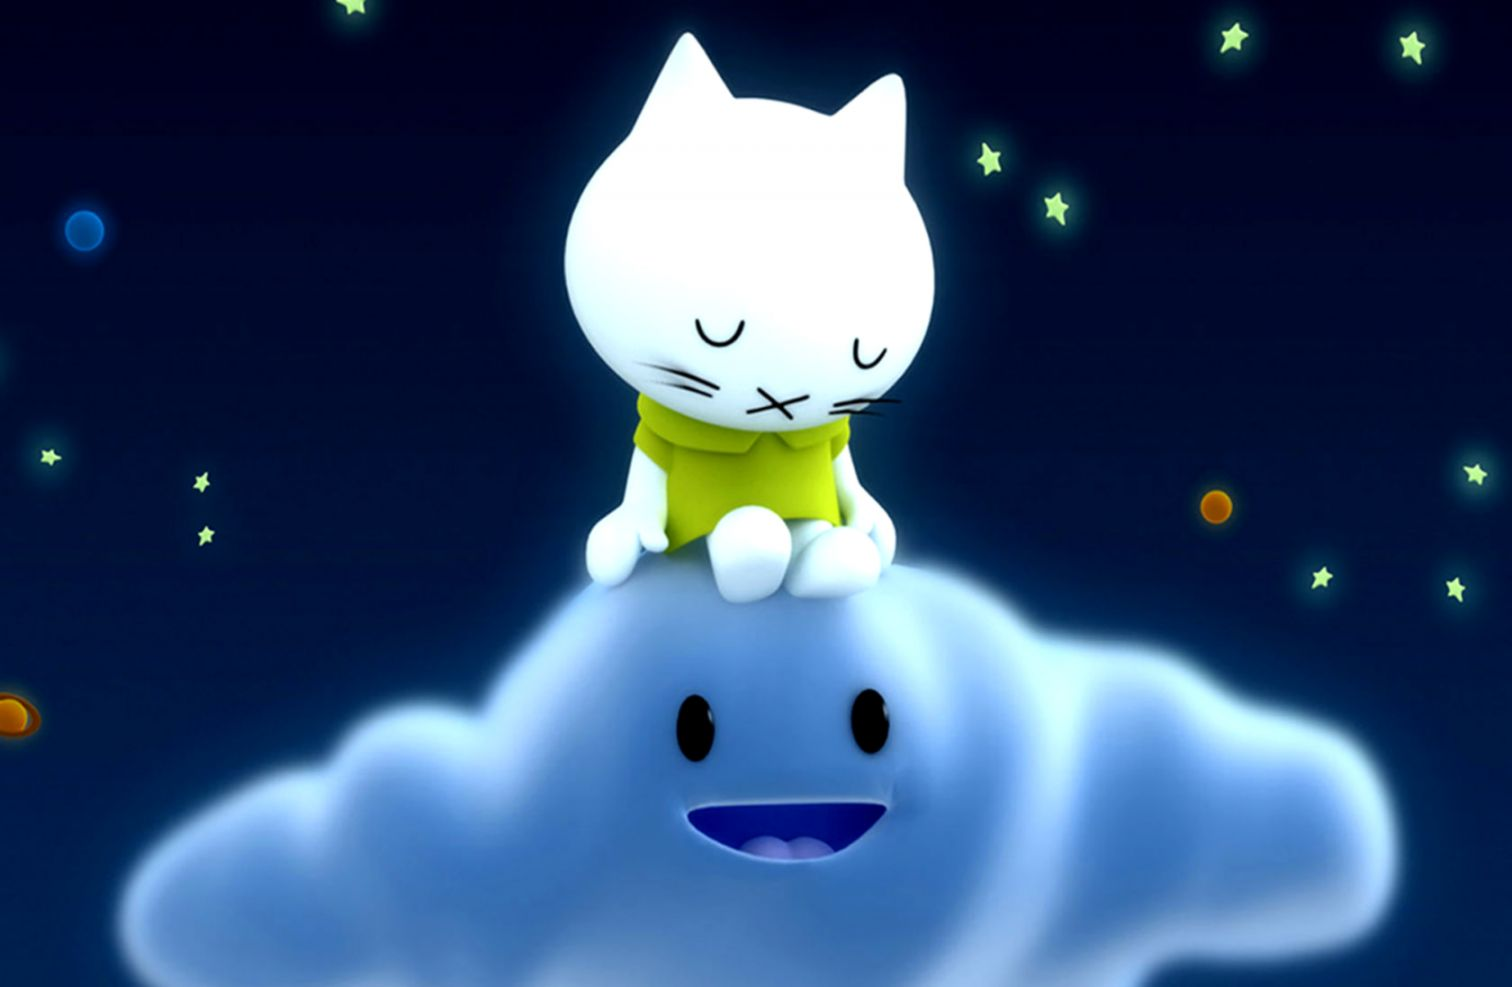 Cute Animated Wallpapers For Desktop Wallpapers Colorful